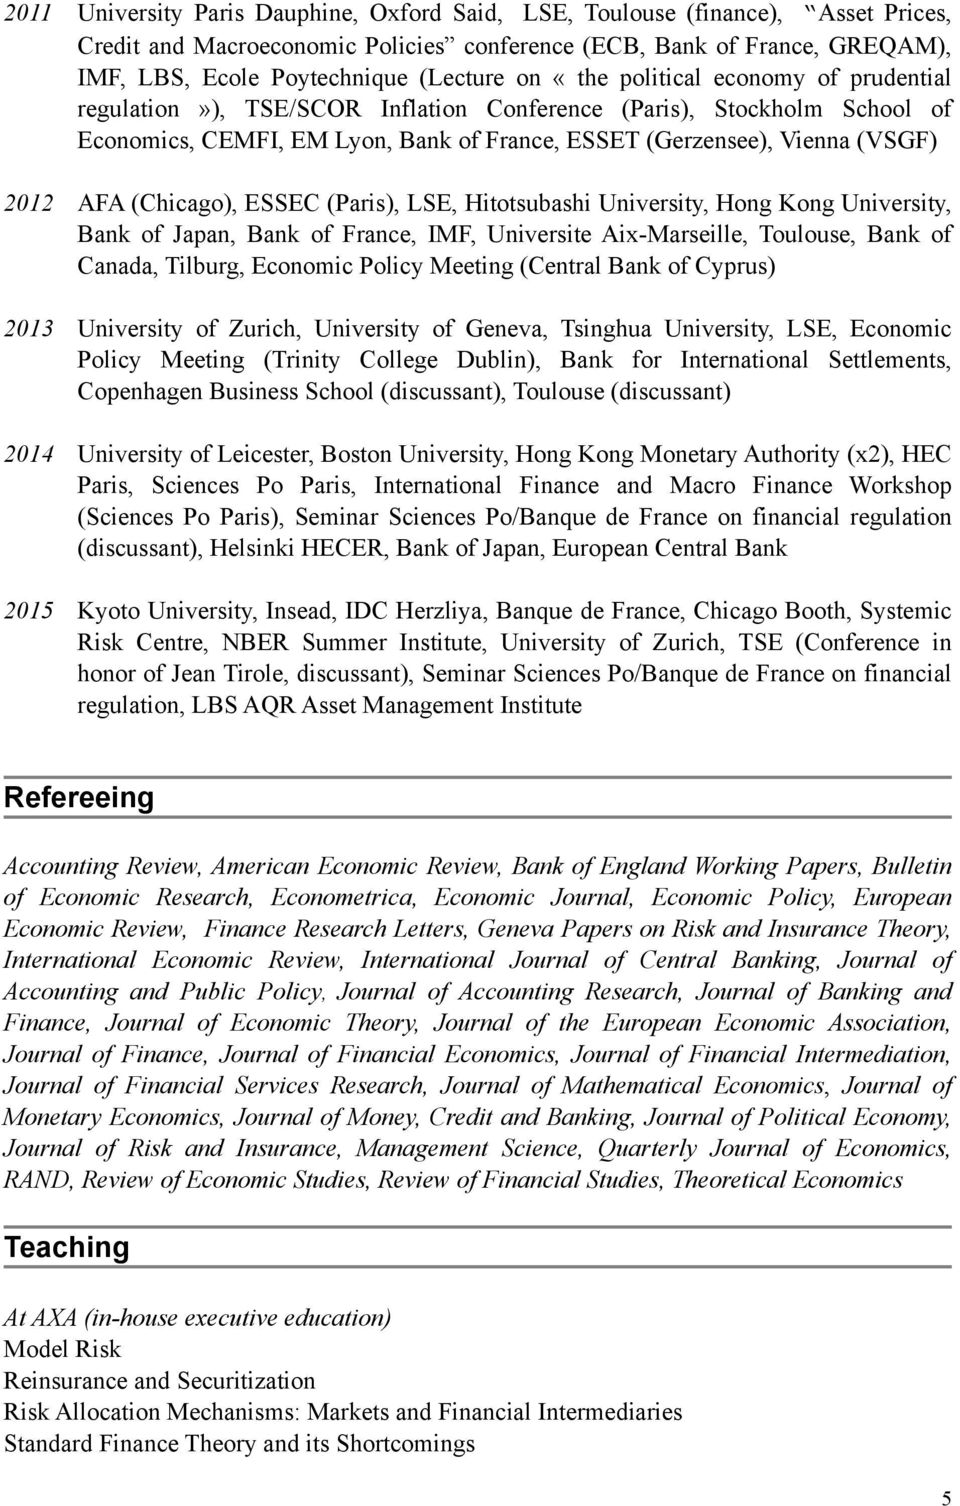 (Chicago), ESSEC (Paris), LSE, Hitotsubashi University, Hong Kong University, Bank of Japan, Bank of France, IMF, Universite Aix-Marseille, Toulouse, Bank of Canada, Tilburg, Economic Policy Meeting